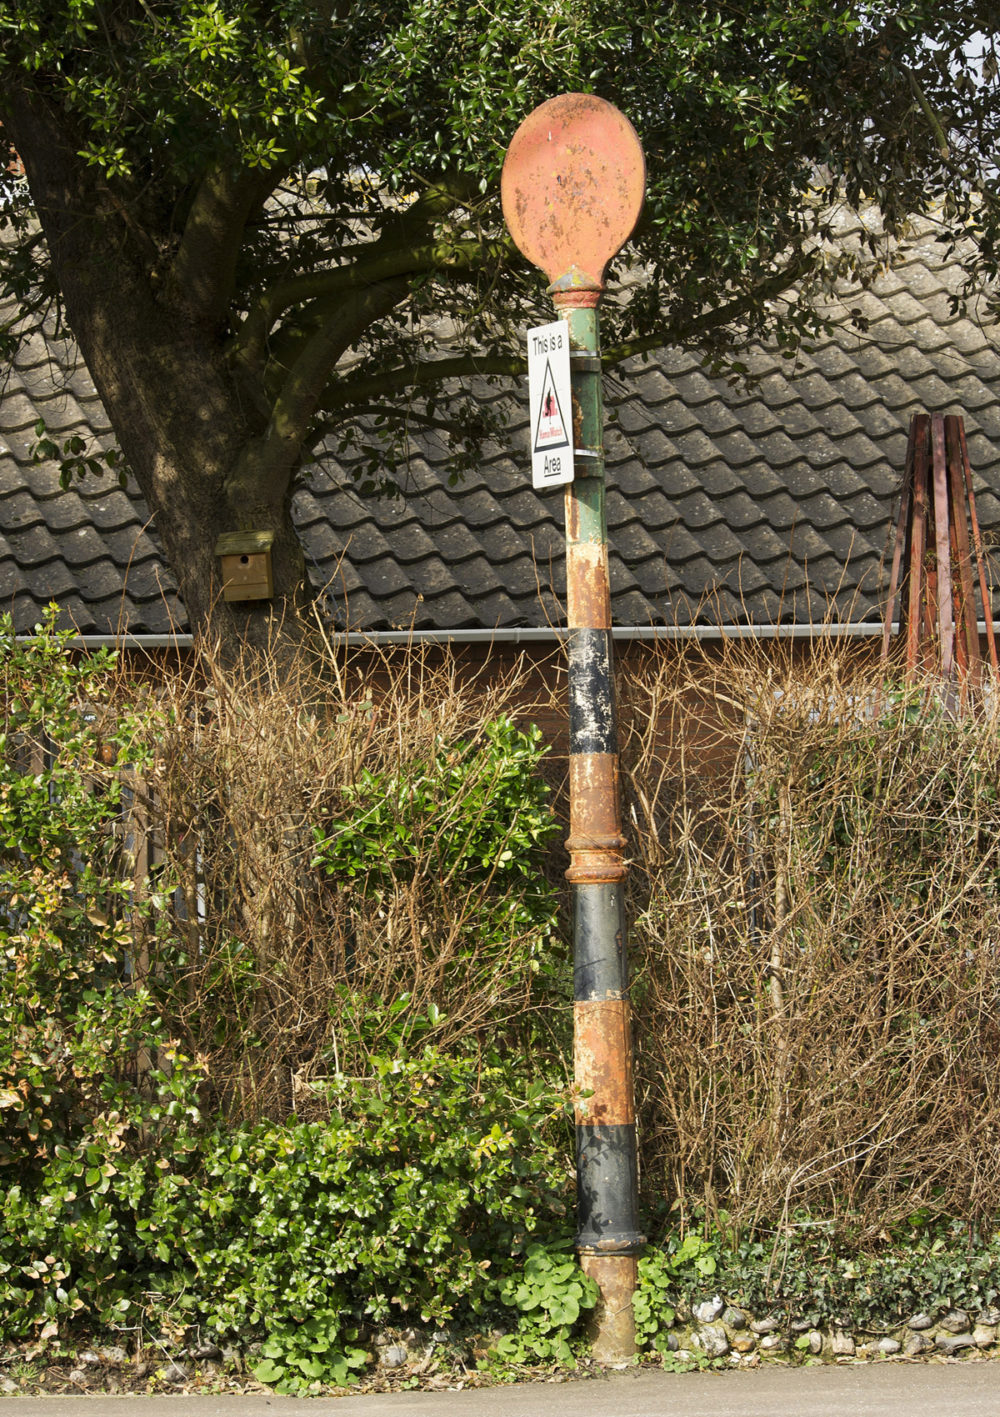 It may be a humble traffic sign, but this post in Overstrand, Norfolk, is one of the only surviving traffic signs, known as